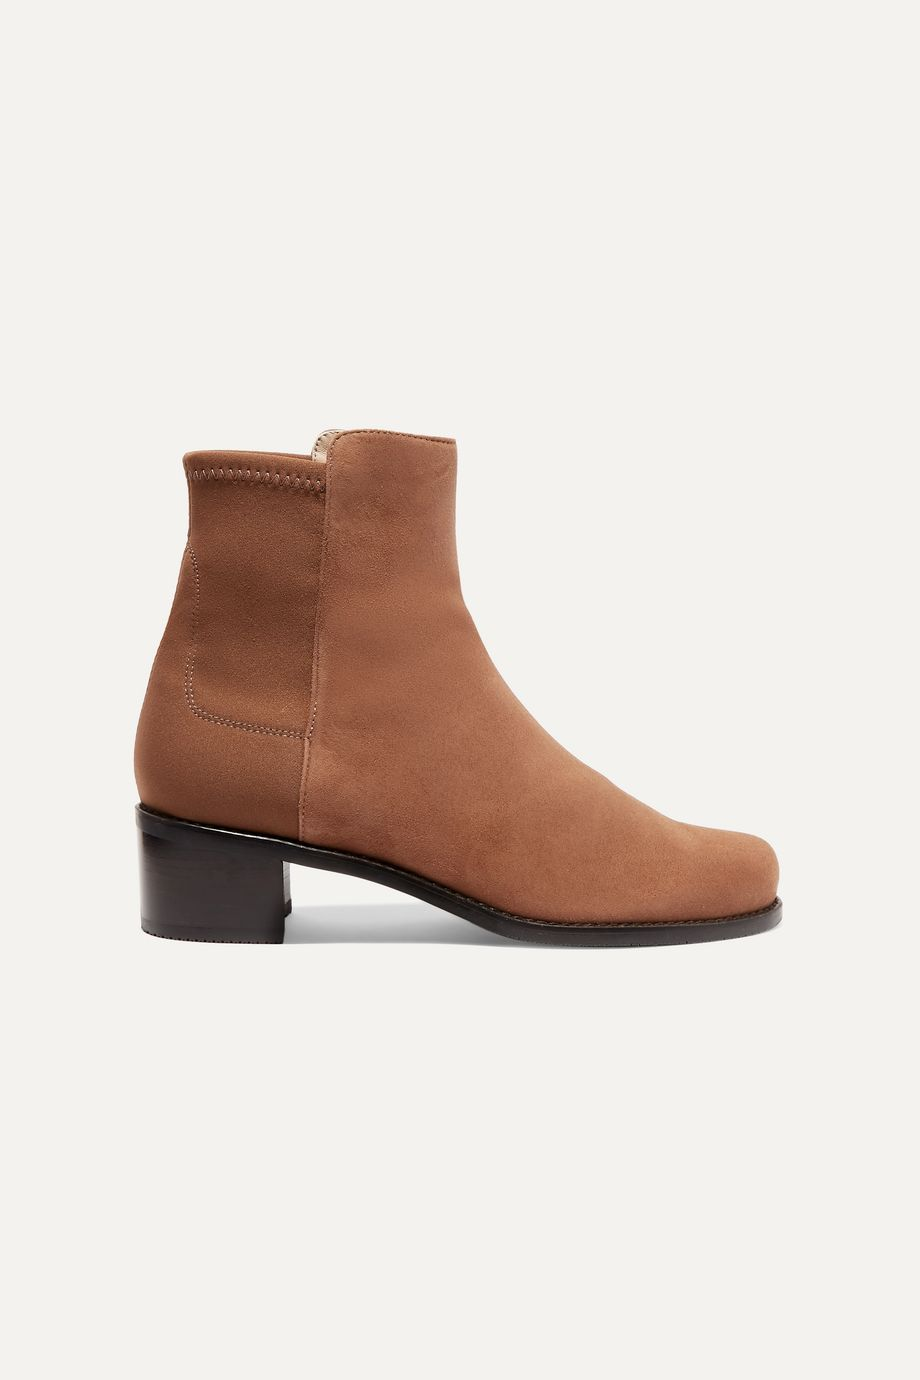 Stuart Weitzman Easyon Reserve suede and neoprene ankle boots